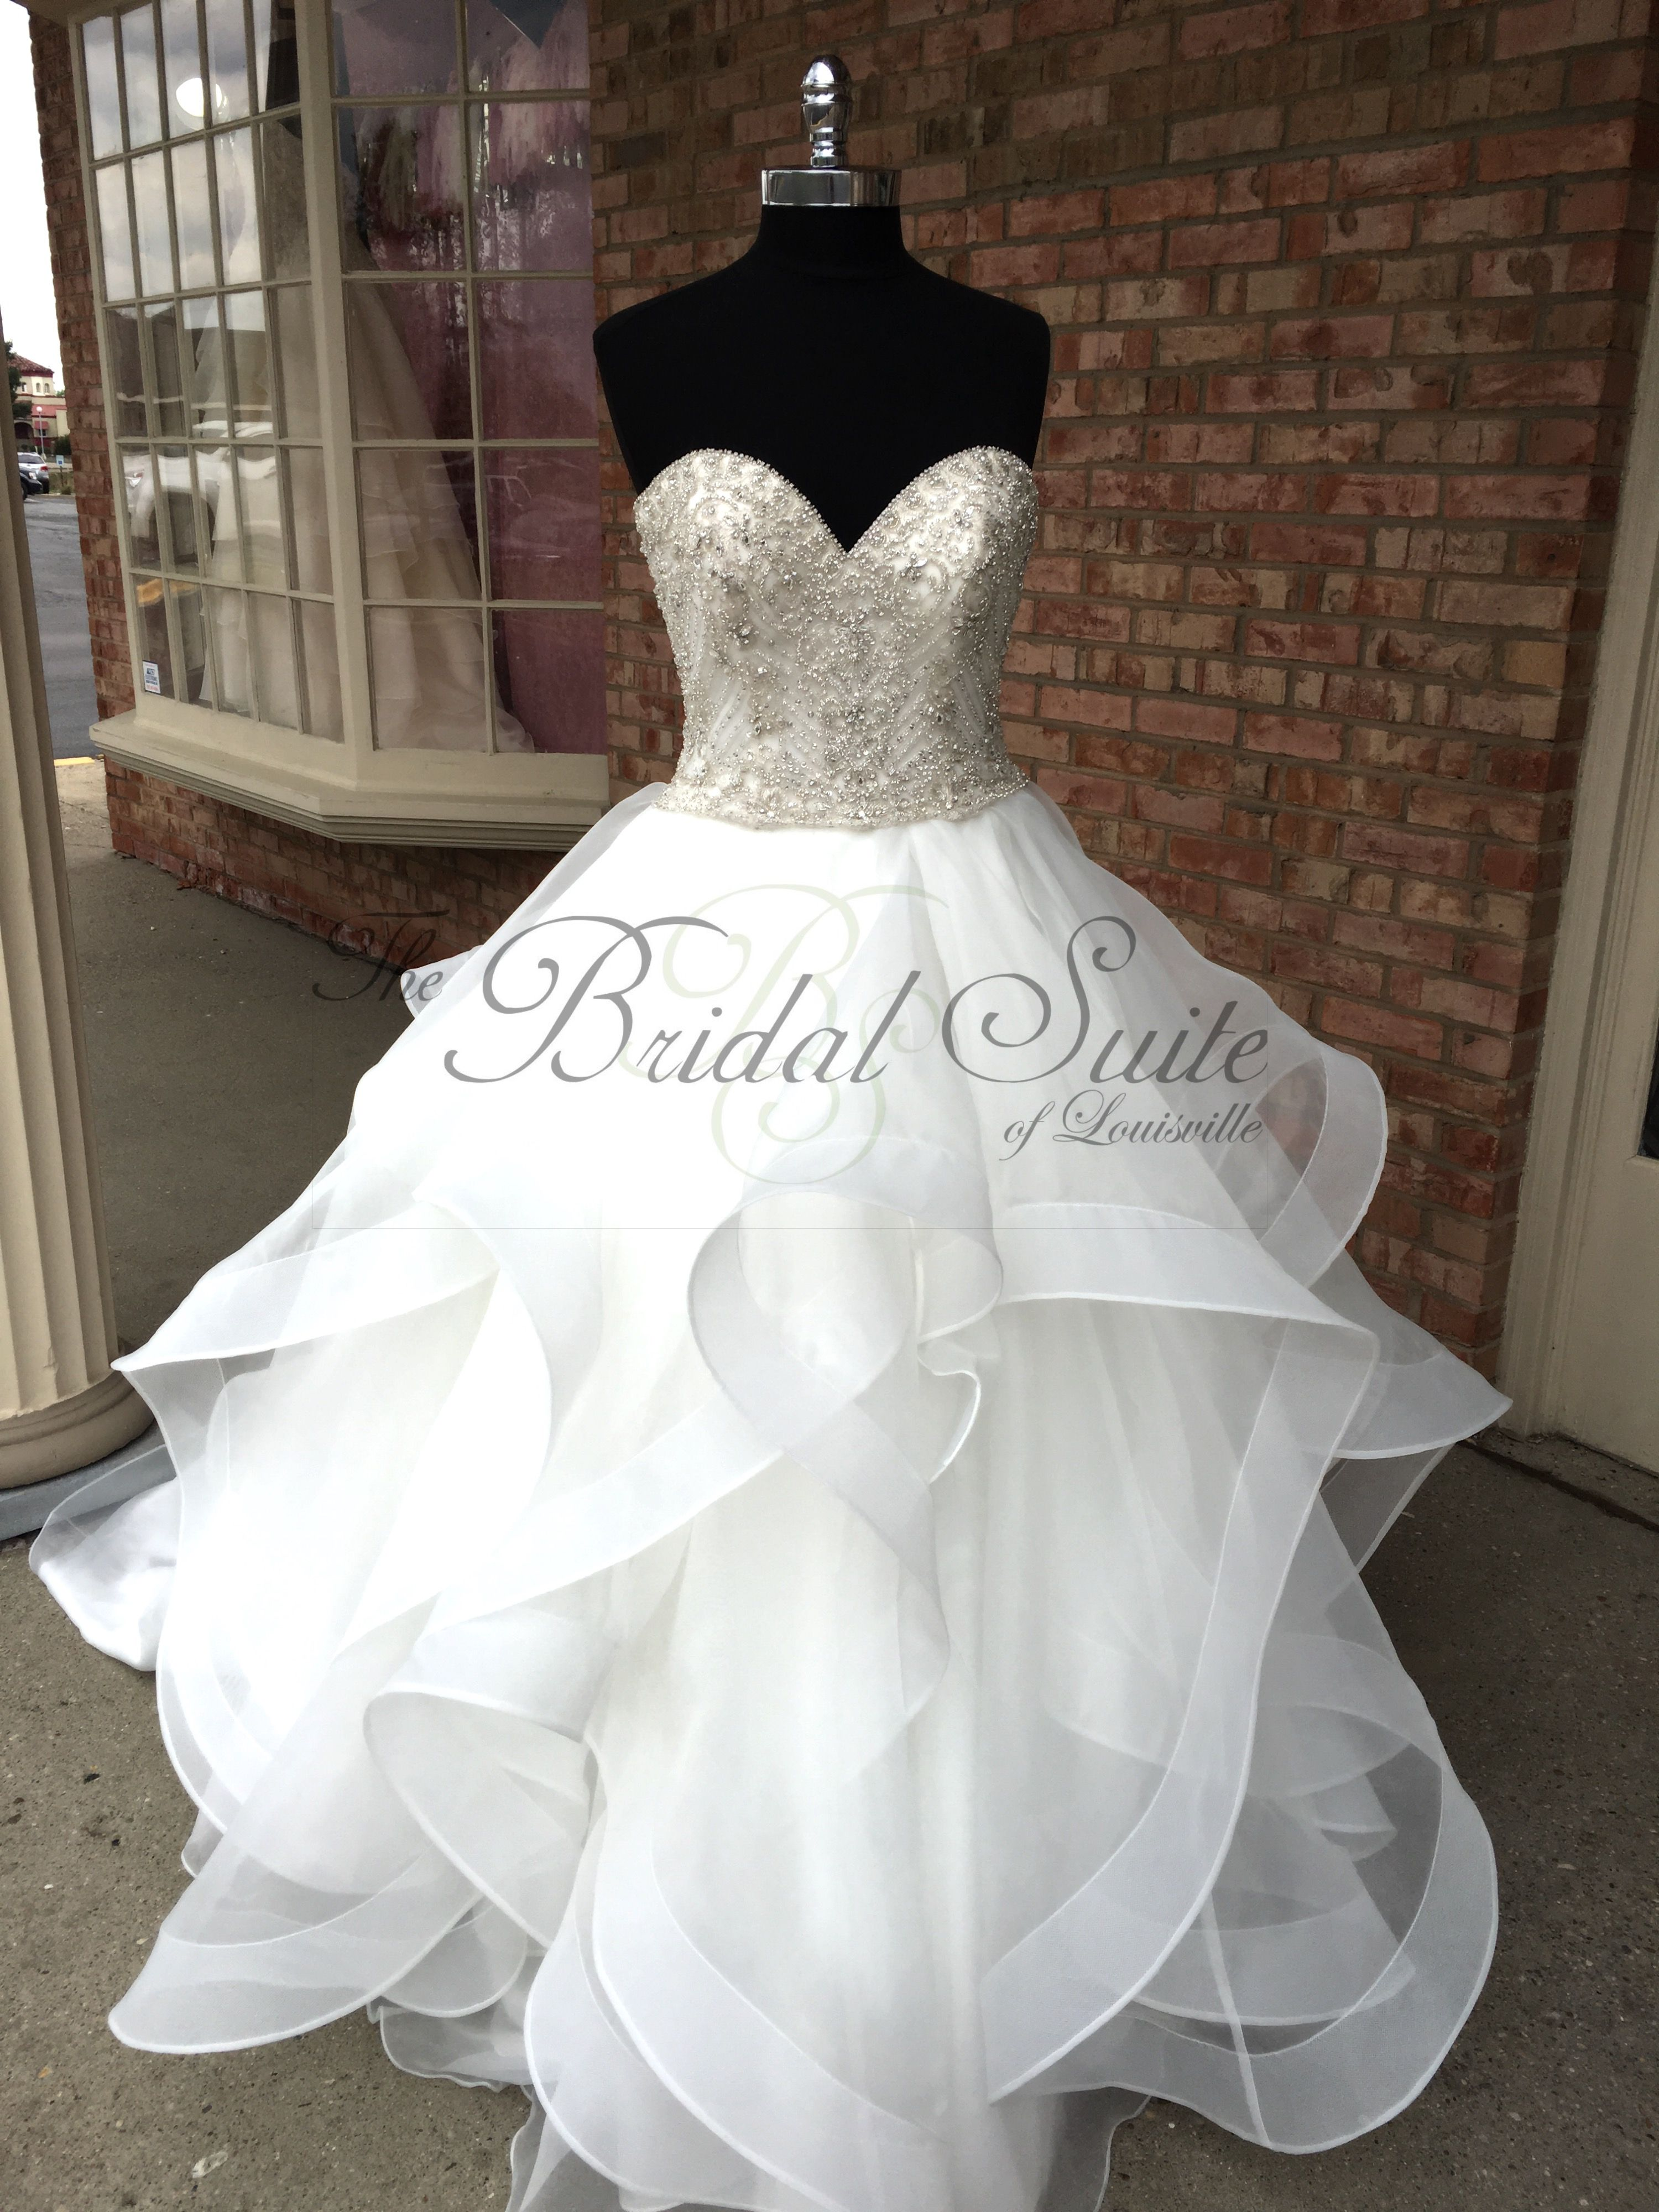 b9db68bb125    This Dress and MORE~ Available at The Bridal Suite of Louisville~   weddingdress  bridalgown  weddinggown